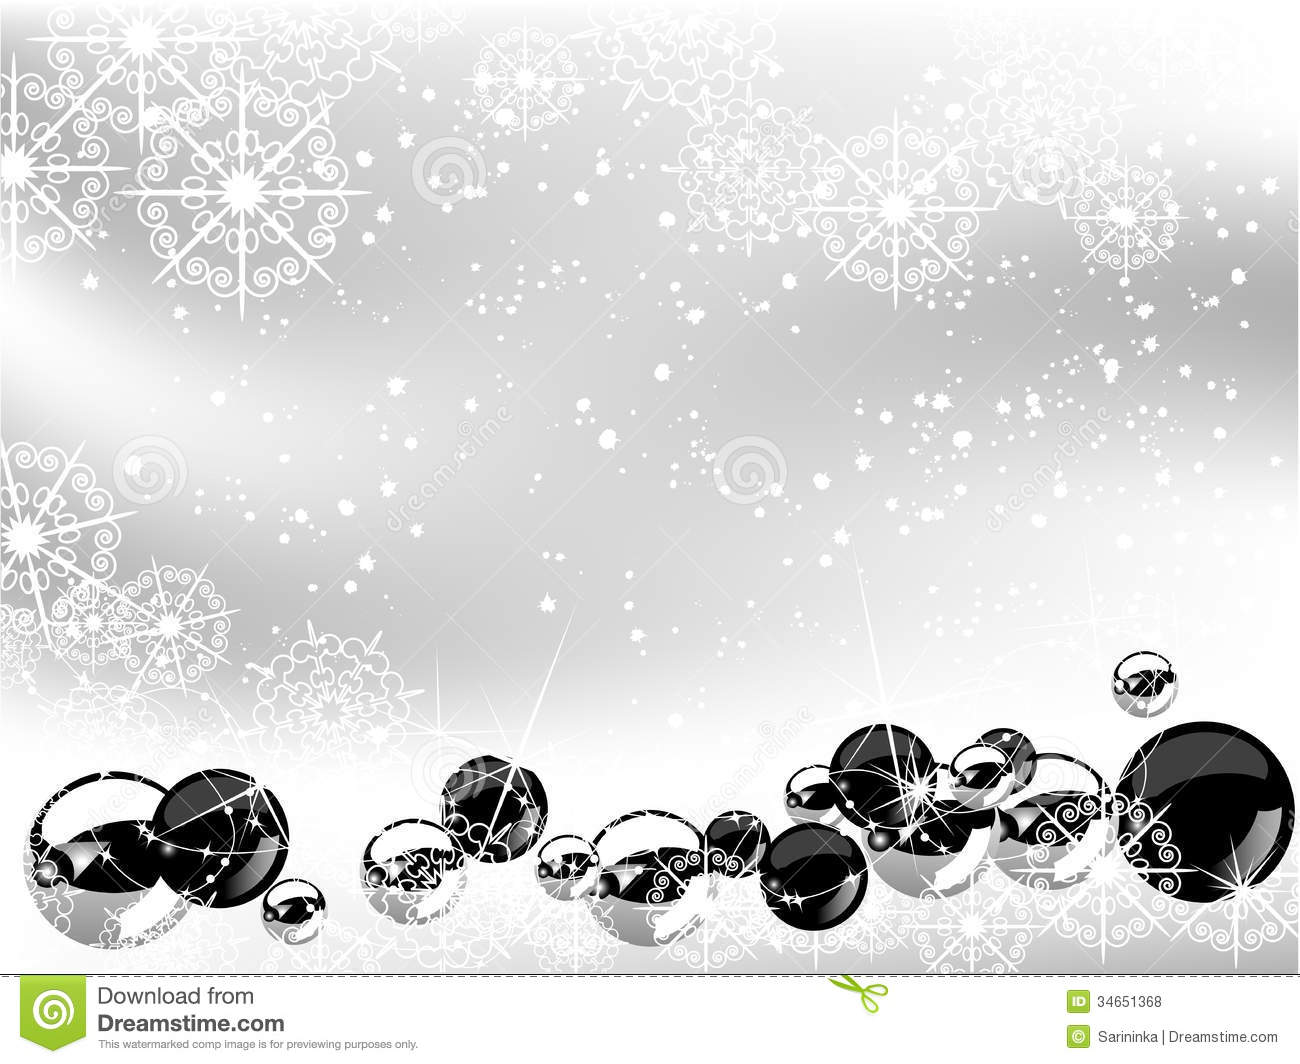 Christmas background stock vector. Illustration of border - 34651368